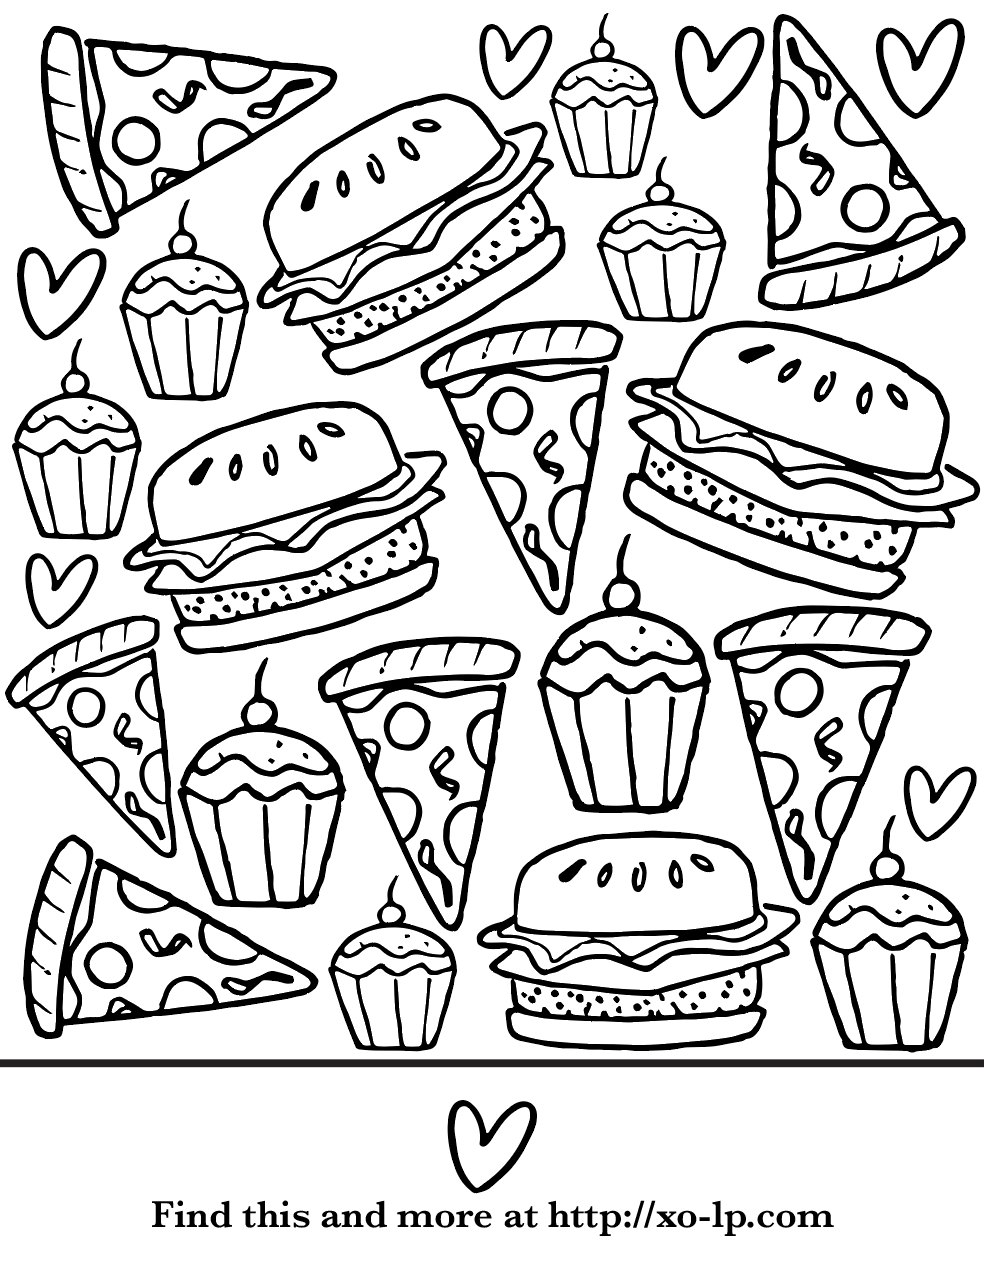 Summer Food Coloring Page Xo Lp Food Coloring Pages Summer Coloring Pages Fall Coloring Pages